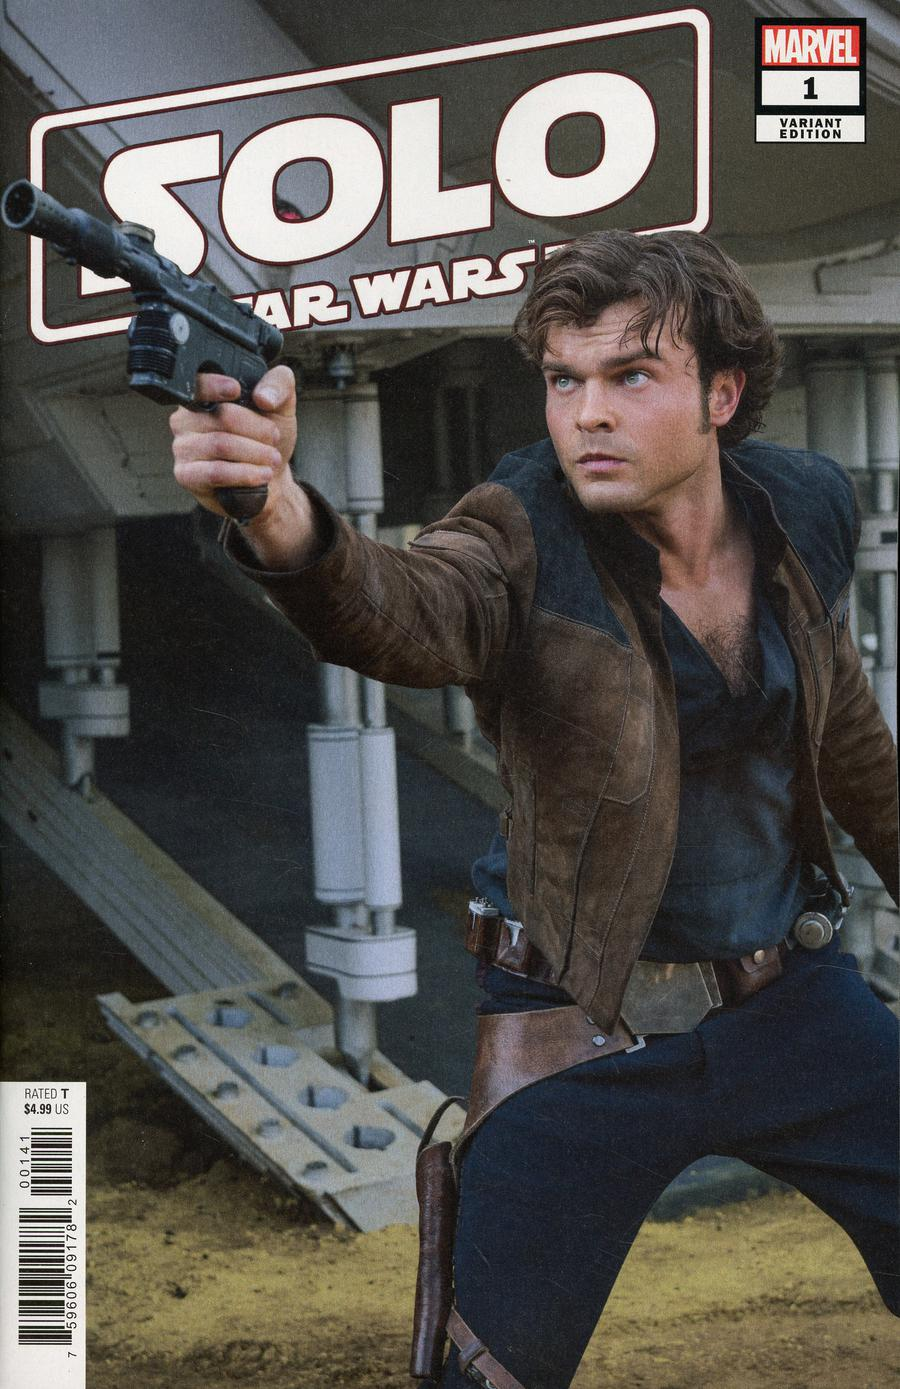 Solo A Star Wars Story Movie Adaptation #1 Marvel Comics 2018